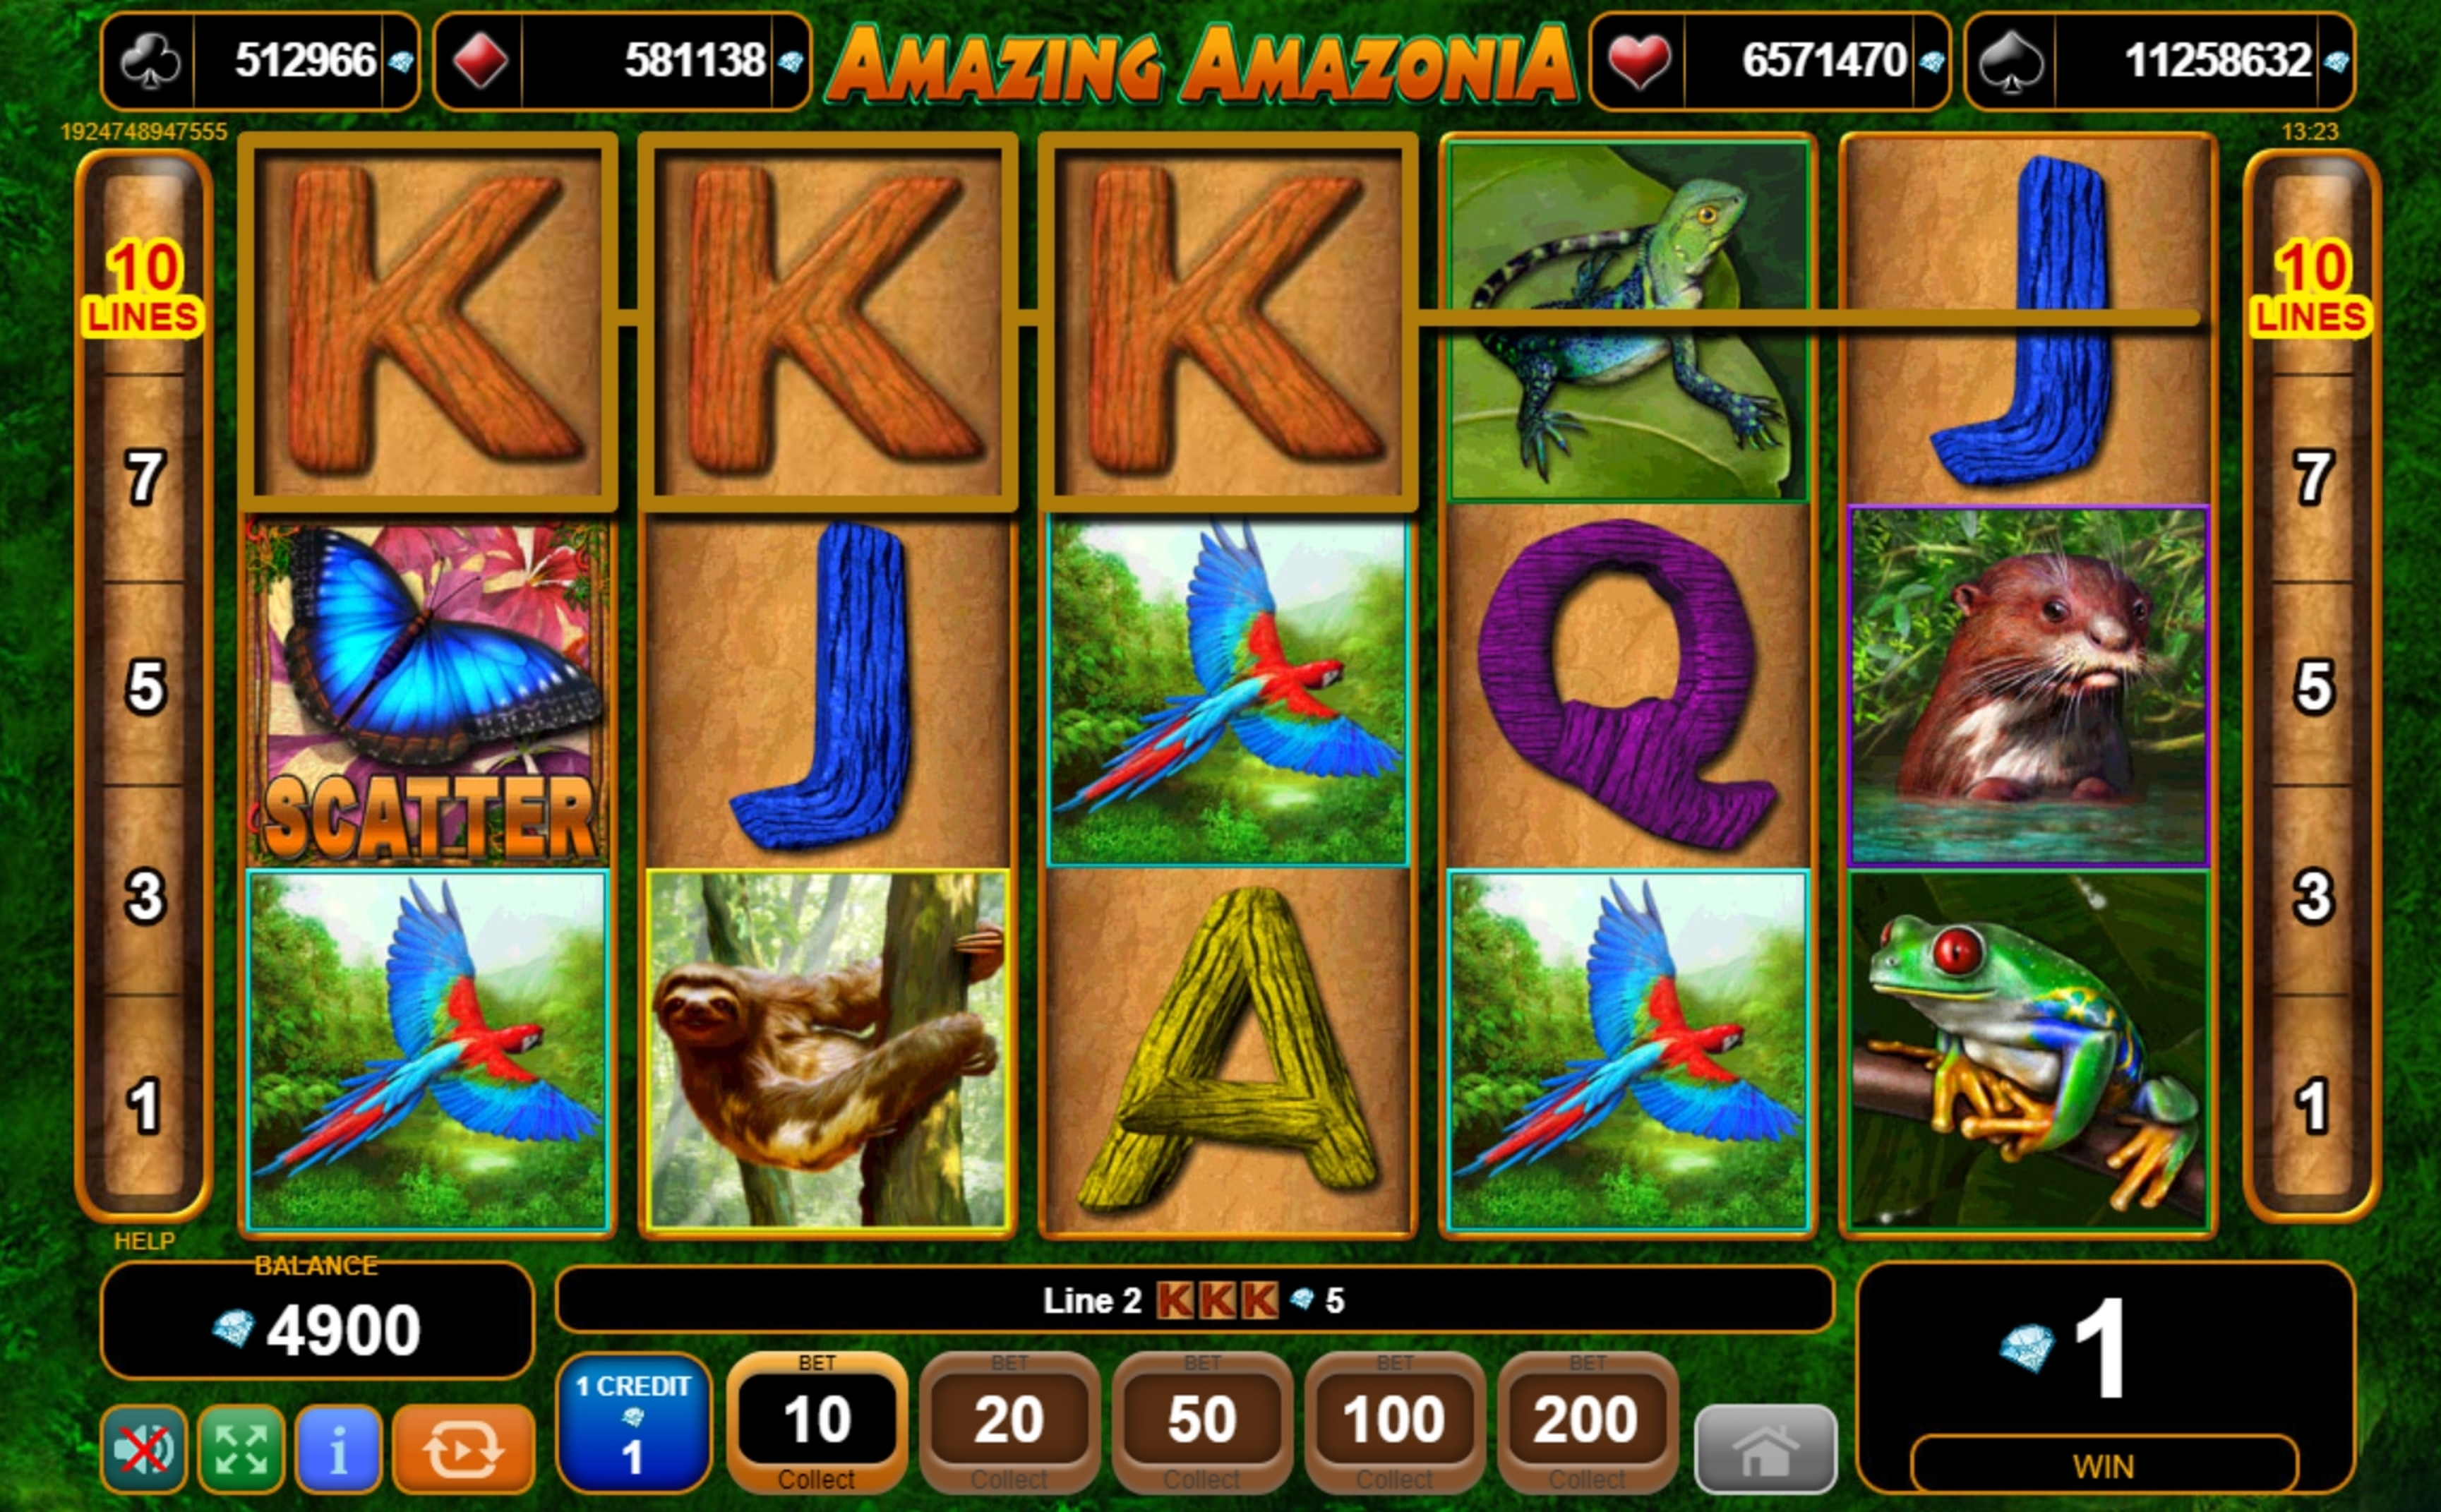 Win Money in Amazing Amazonia Free Slot Game by EGT